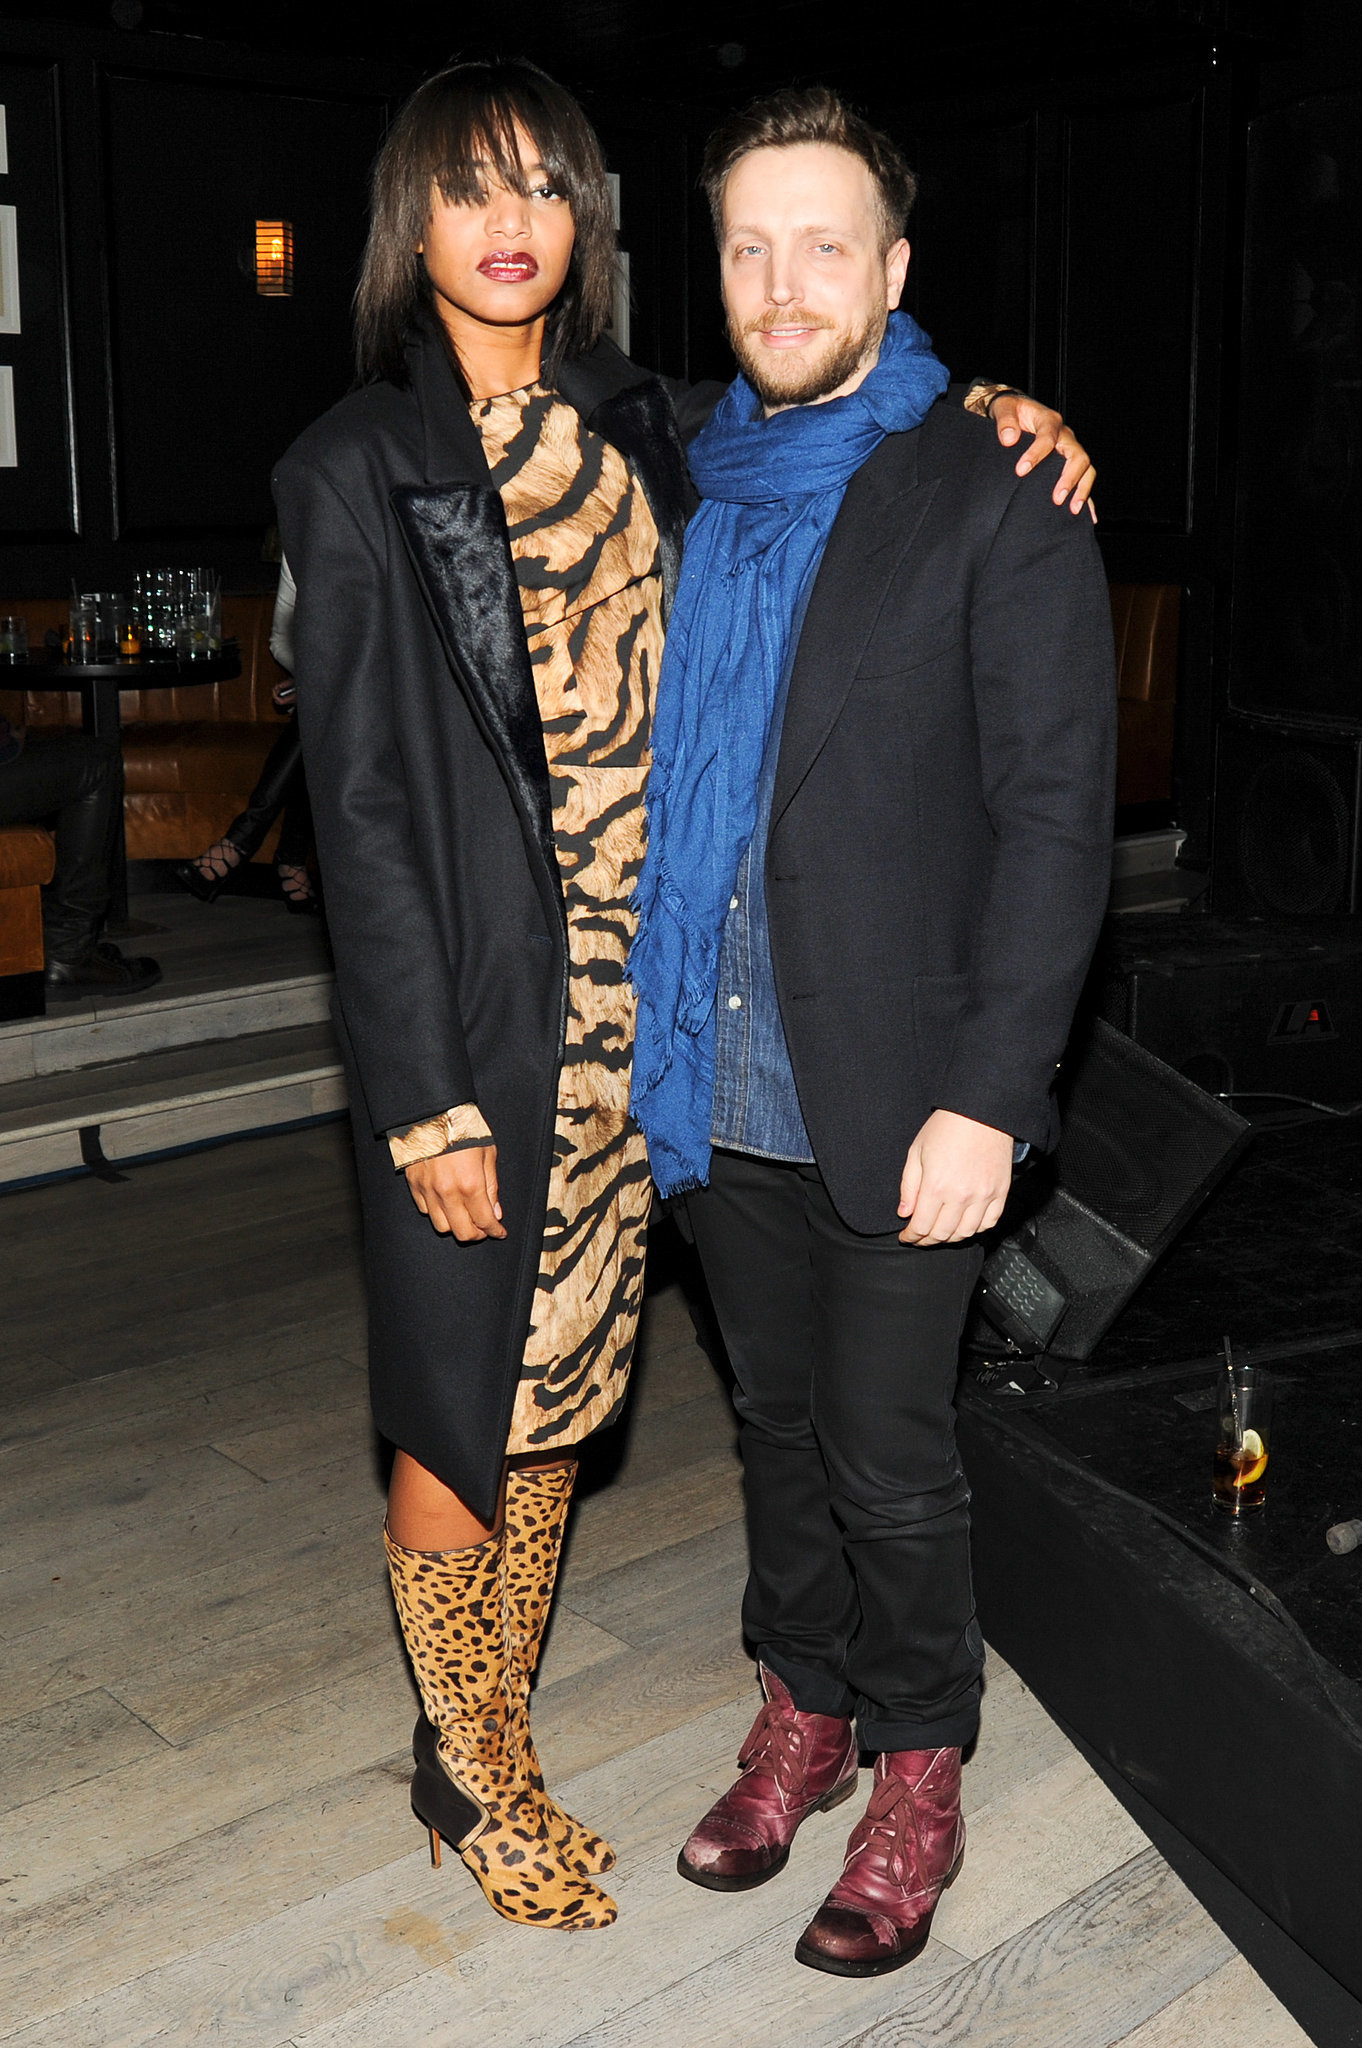 Alice Smith and Ariel Foxman at InStyle's Fashion Week kickoff party.